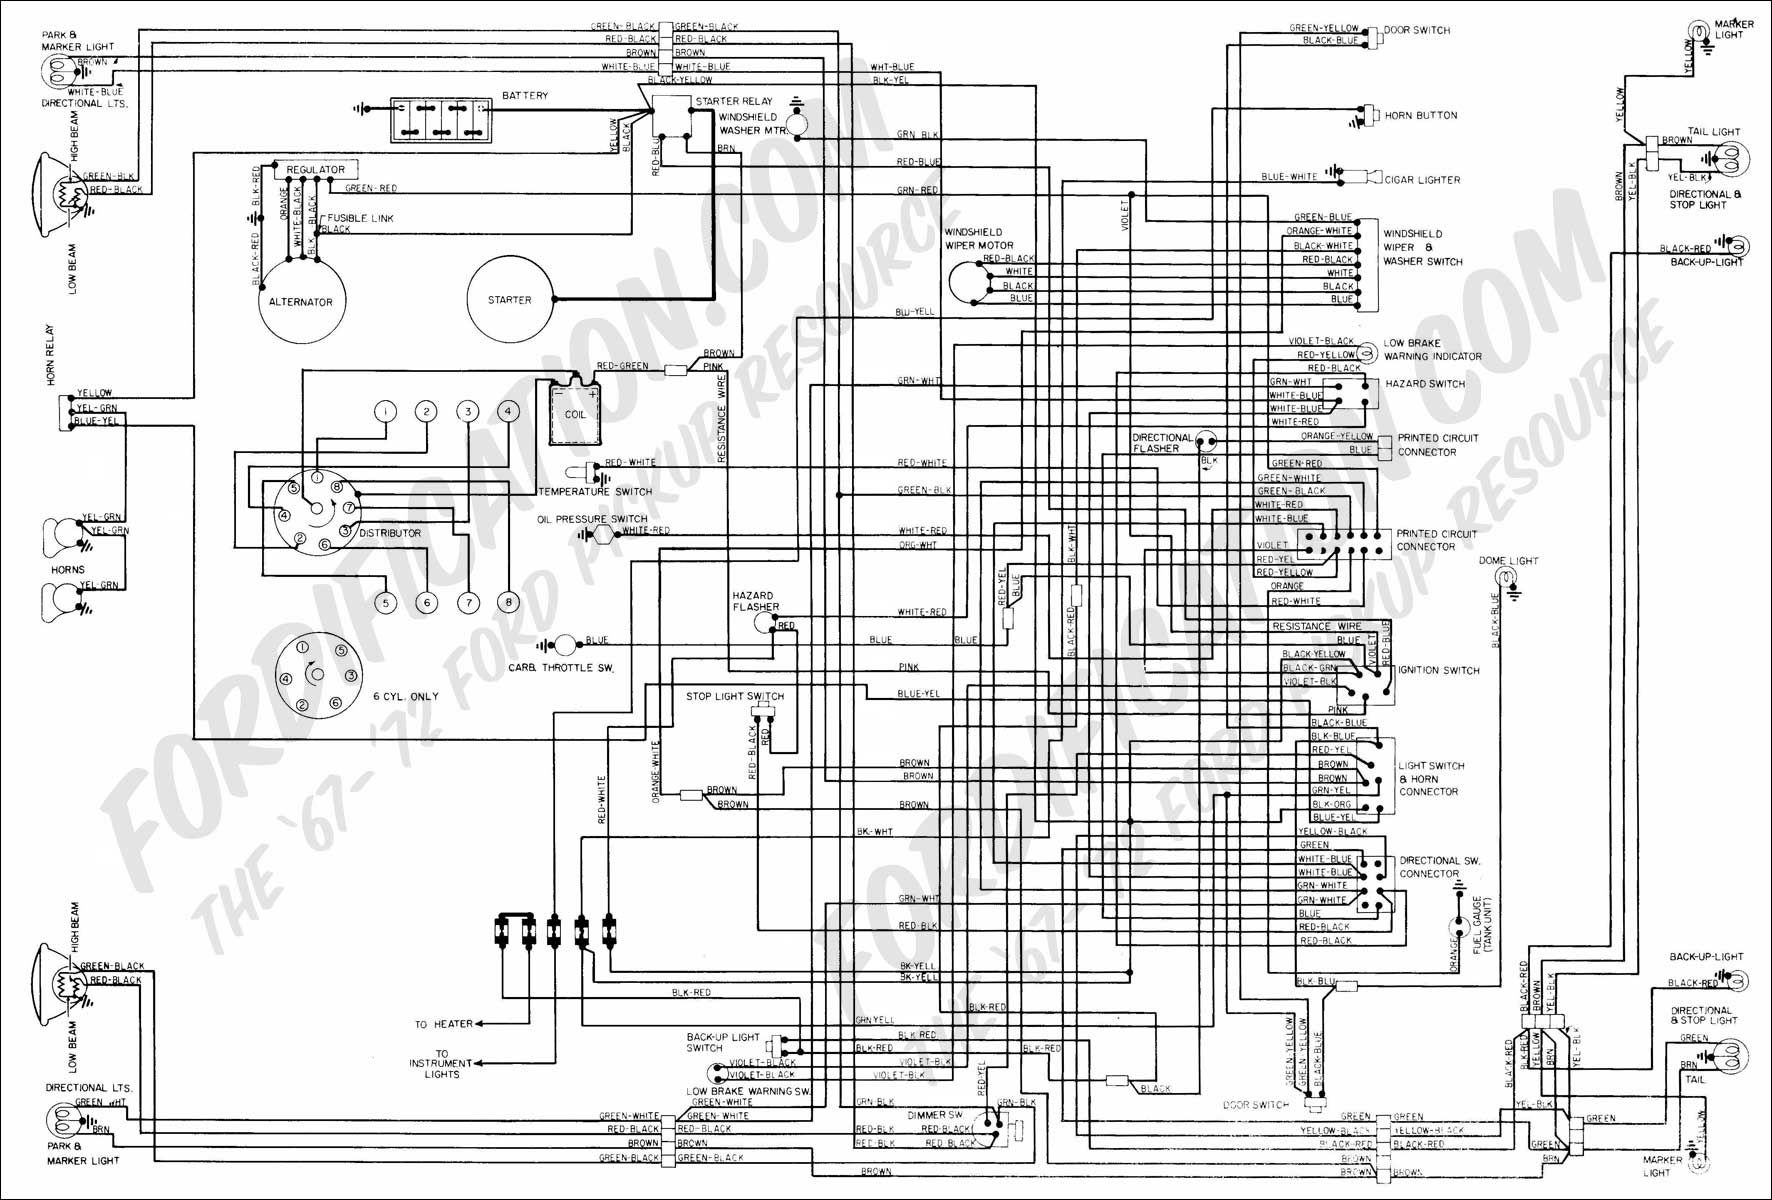 be873db495753211c2fc9a563f039b29 solenoid 1971 f250 1971 ford f100 wiring diagram www ford 1971 ford f250 wiring diagram at love-stories.co